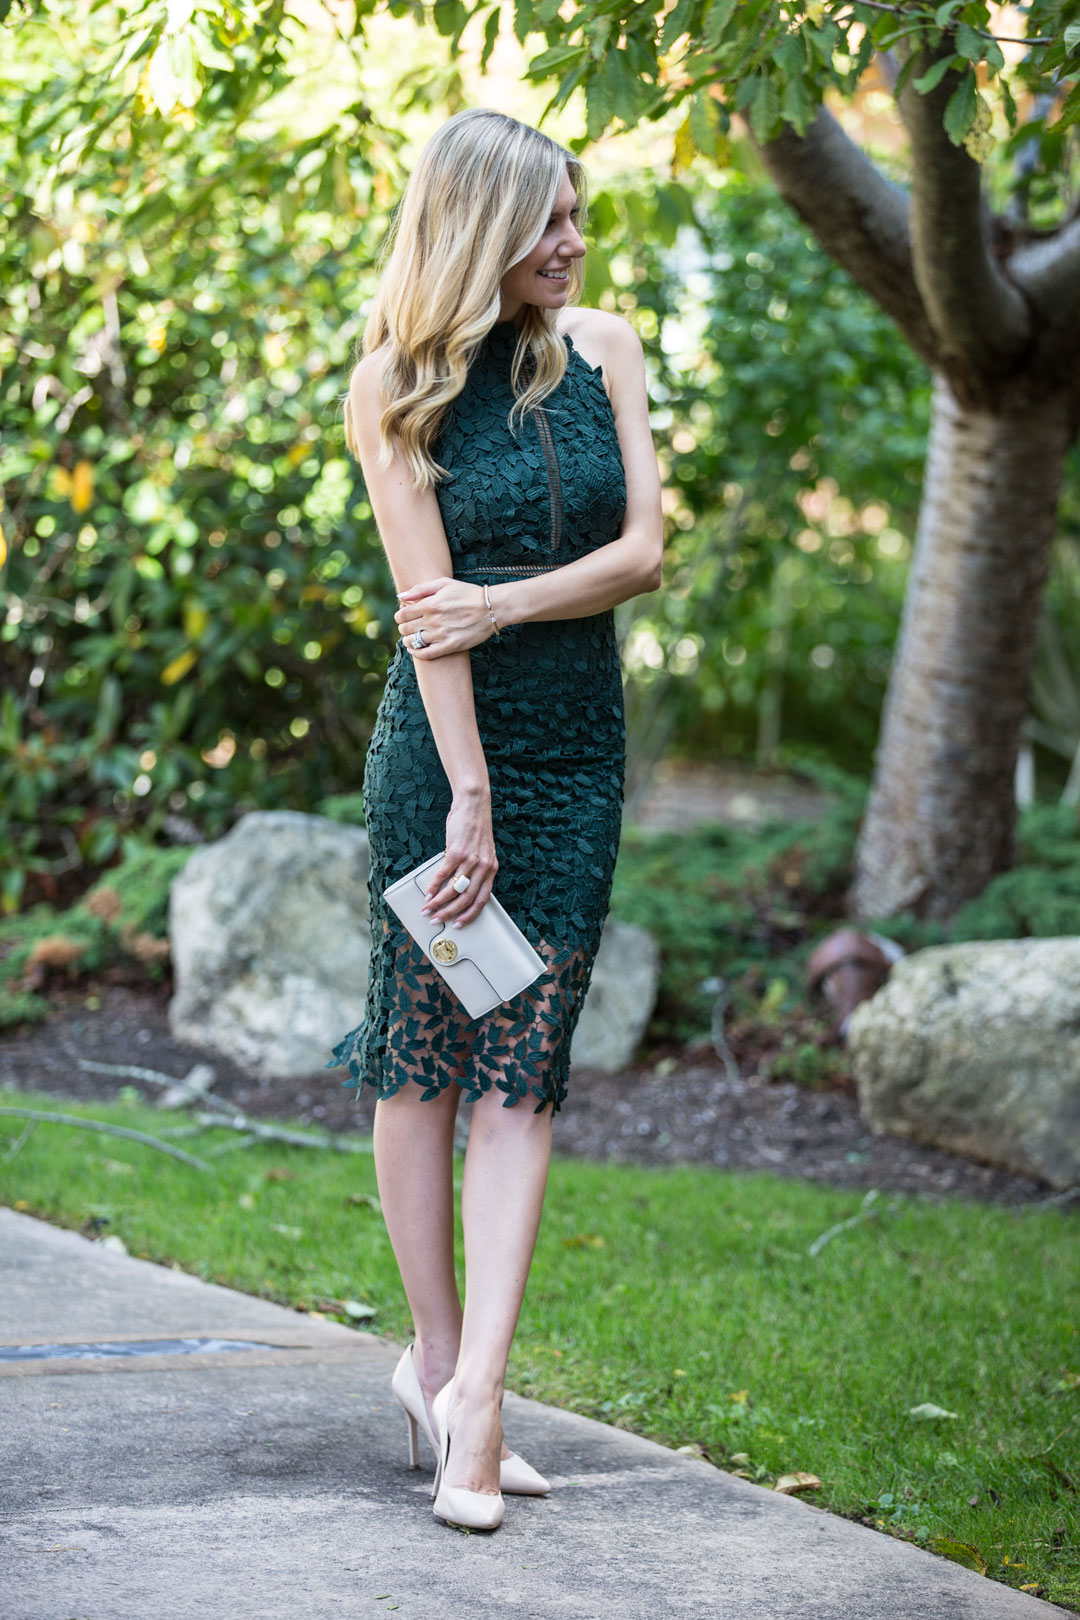 The perfect formal fall wedding outfit